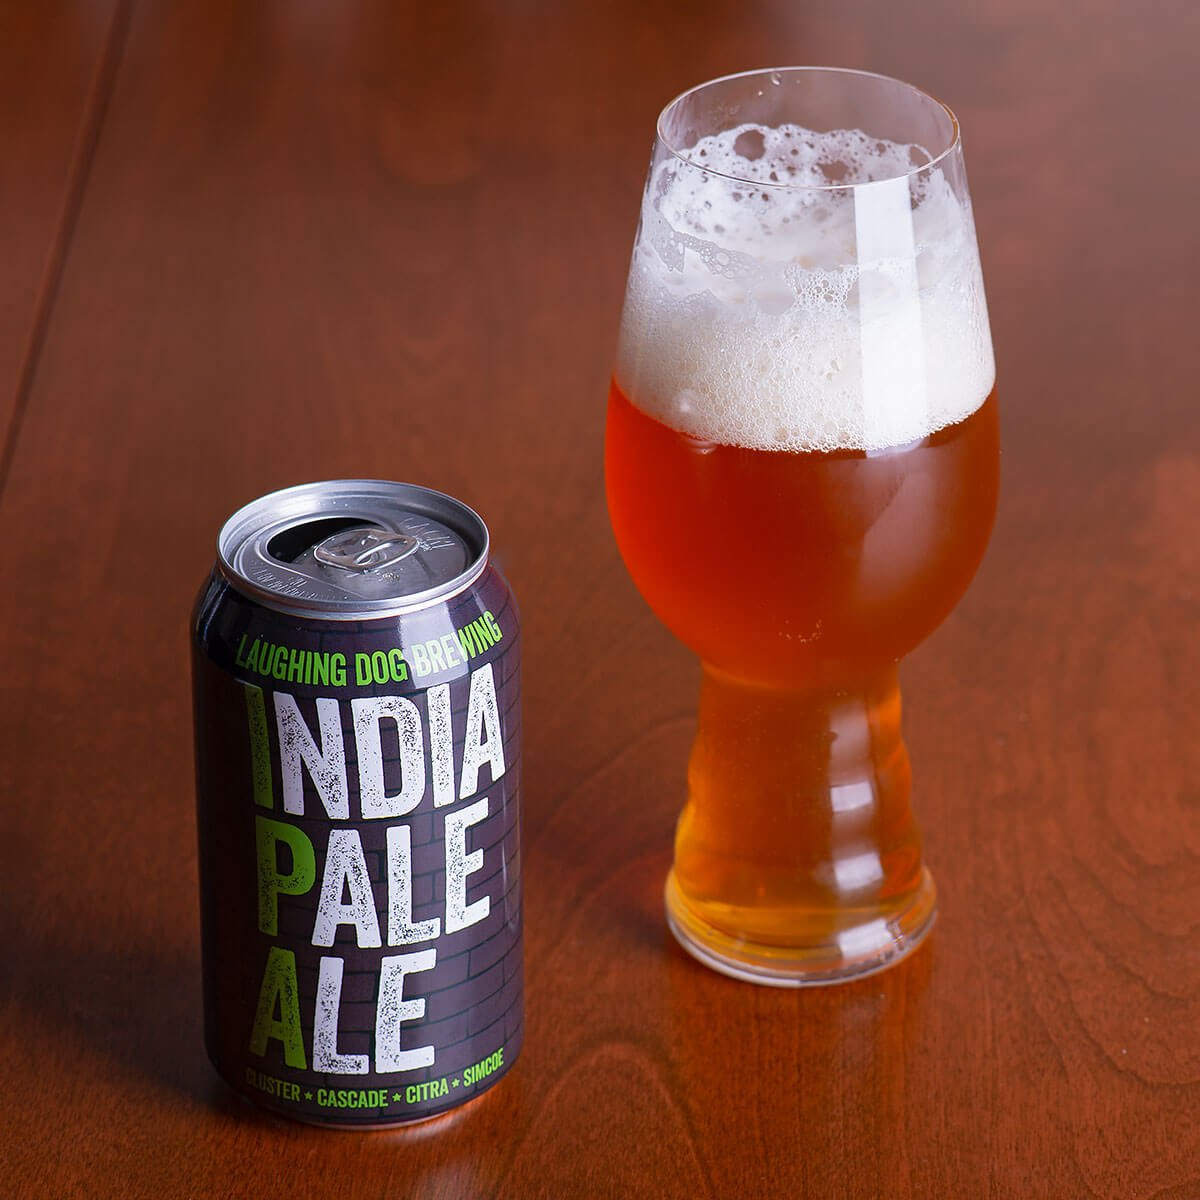 The India Pale Ale (I.P.A.) by Laughing Dog Brewing is a hoppy mouth pleaser, delivering a blast of floral, piney, and citrusy hops.